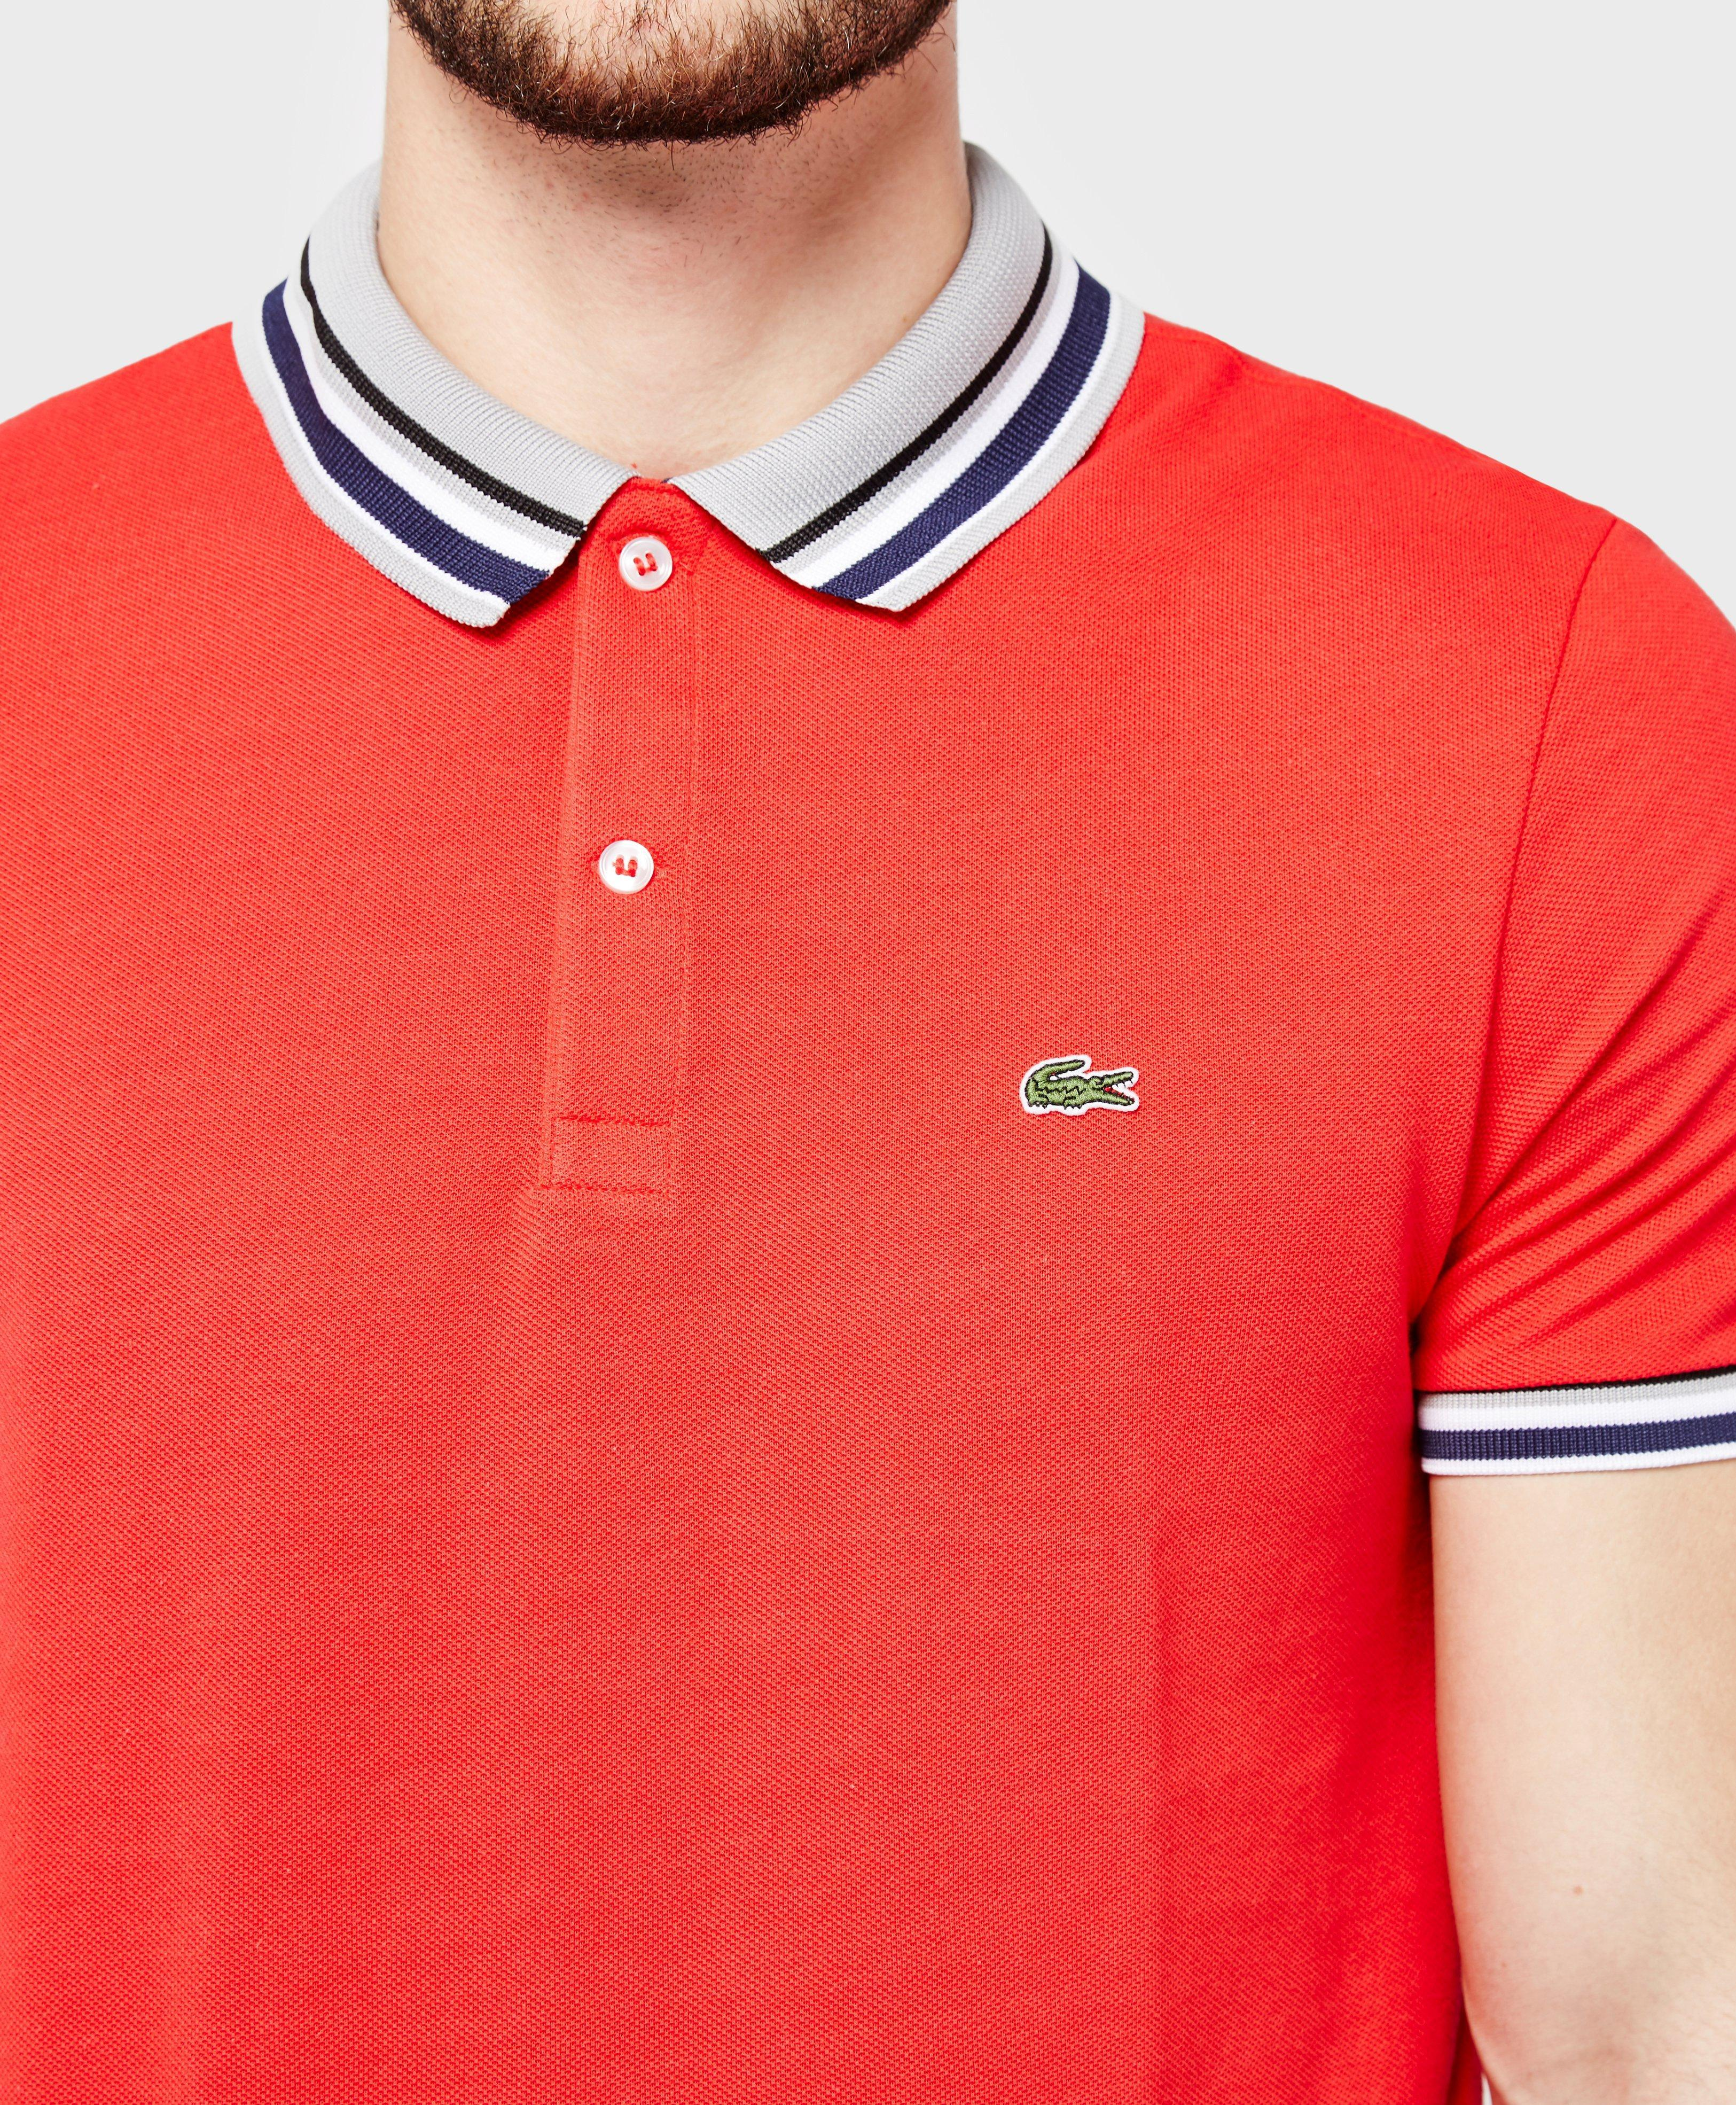 Lyst lacoste pique polo shirt in red for men for Lacoste stripe pique polo shirt